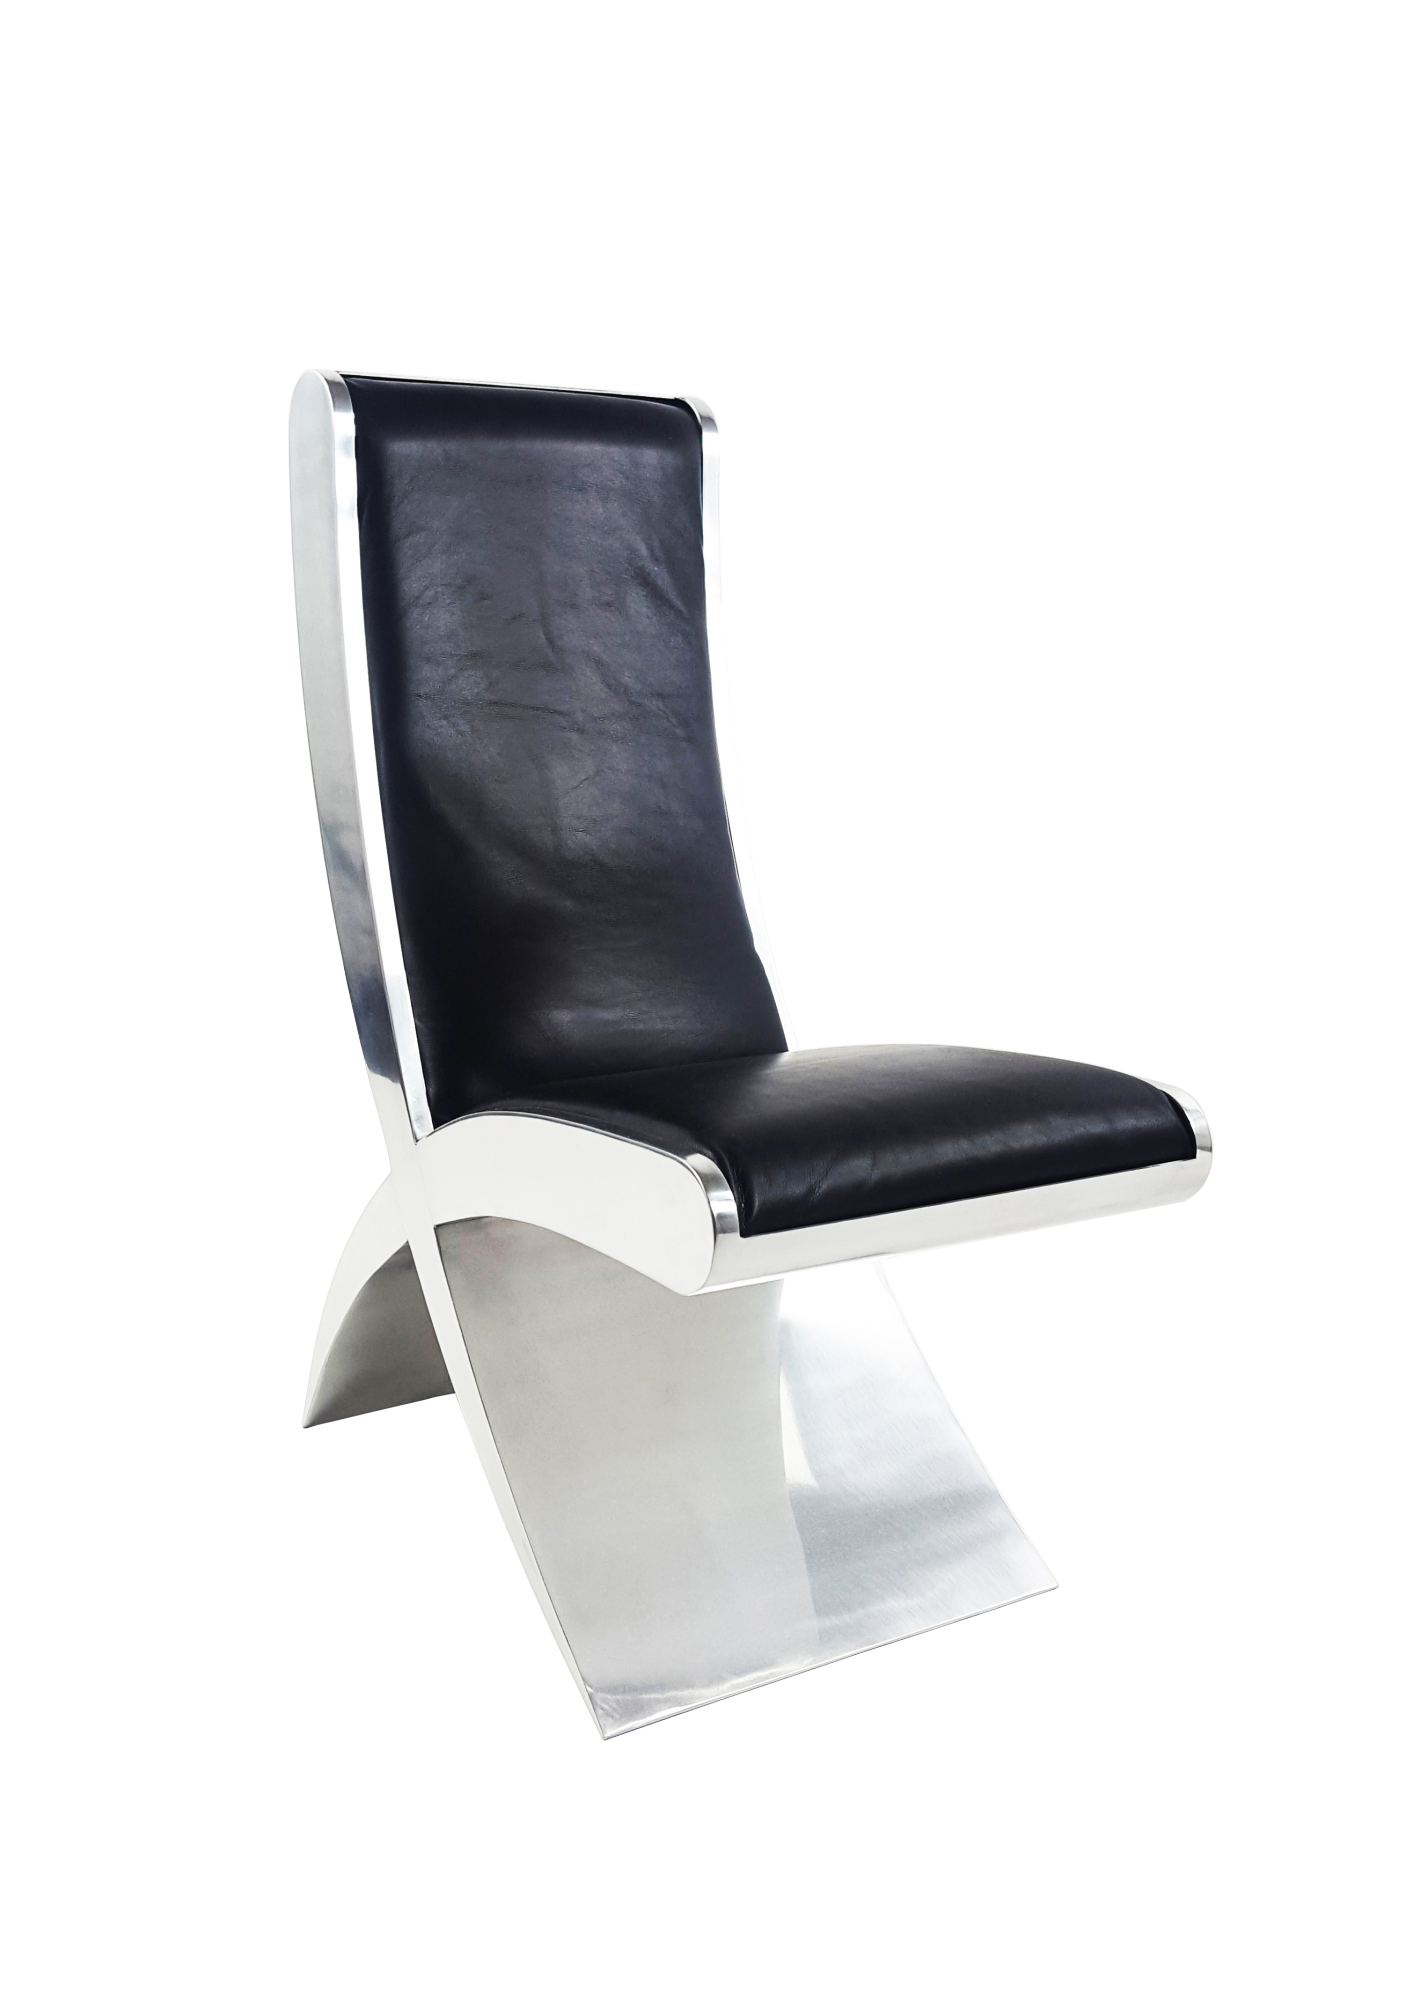 Chaise YCKS design marty henryot & cie